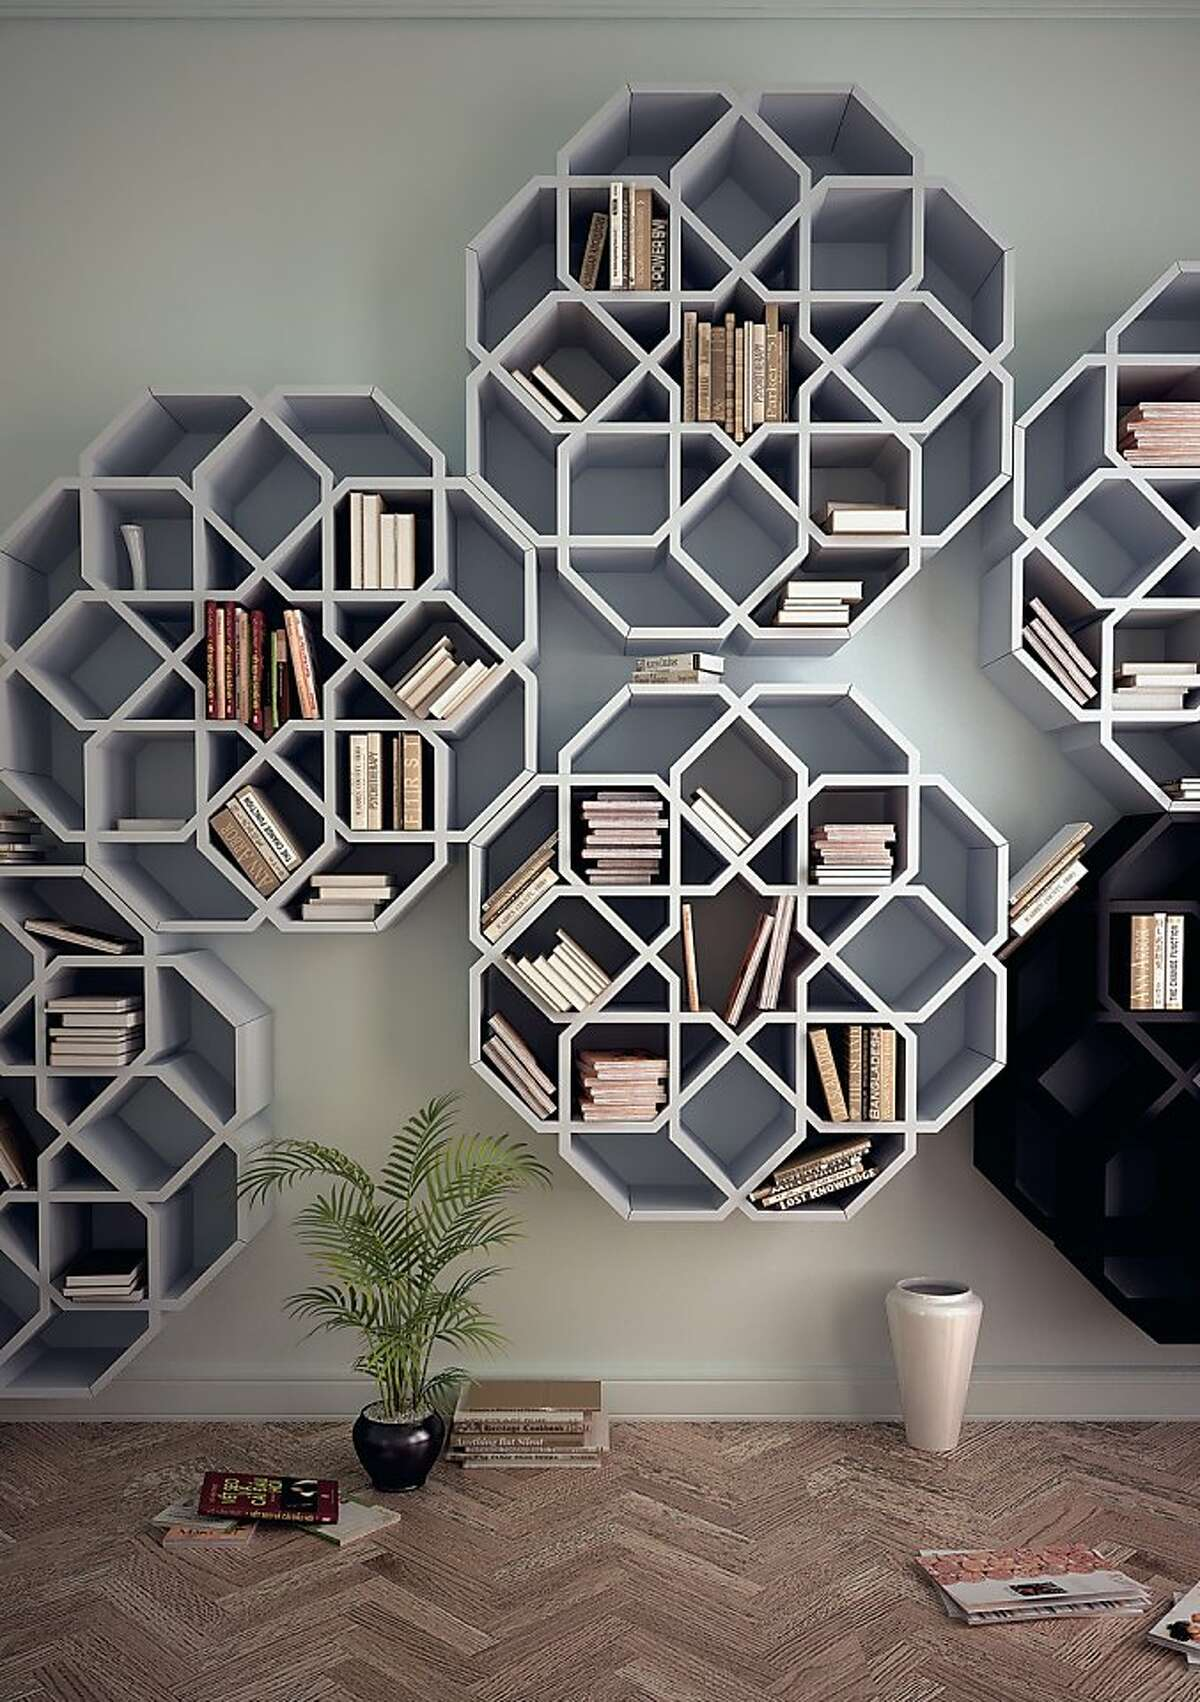 The MiniZelli is said to remind designer Younes Duret of the mosaics from his Moroccan childhood. Made from Simopor, a lightweight PVC free material, the shelves are constructed from eight modules which lock together without any hardware.